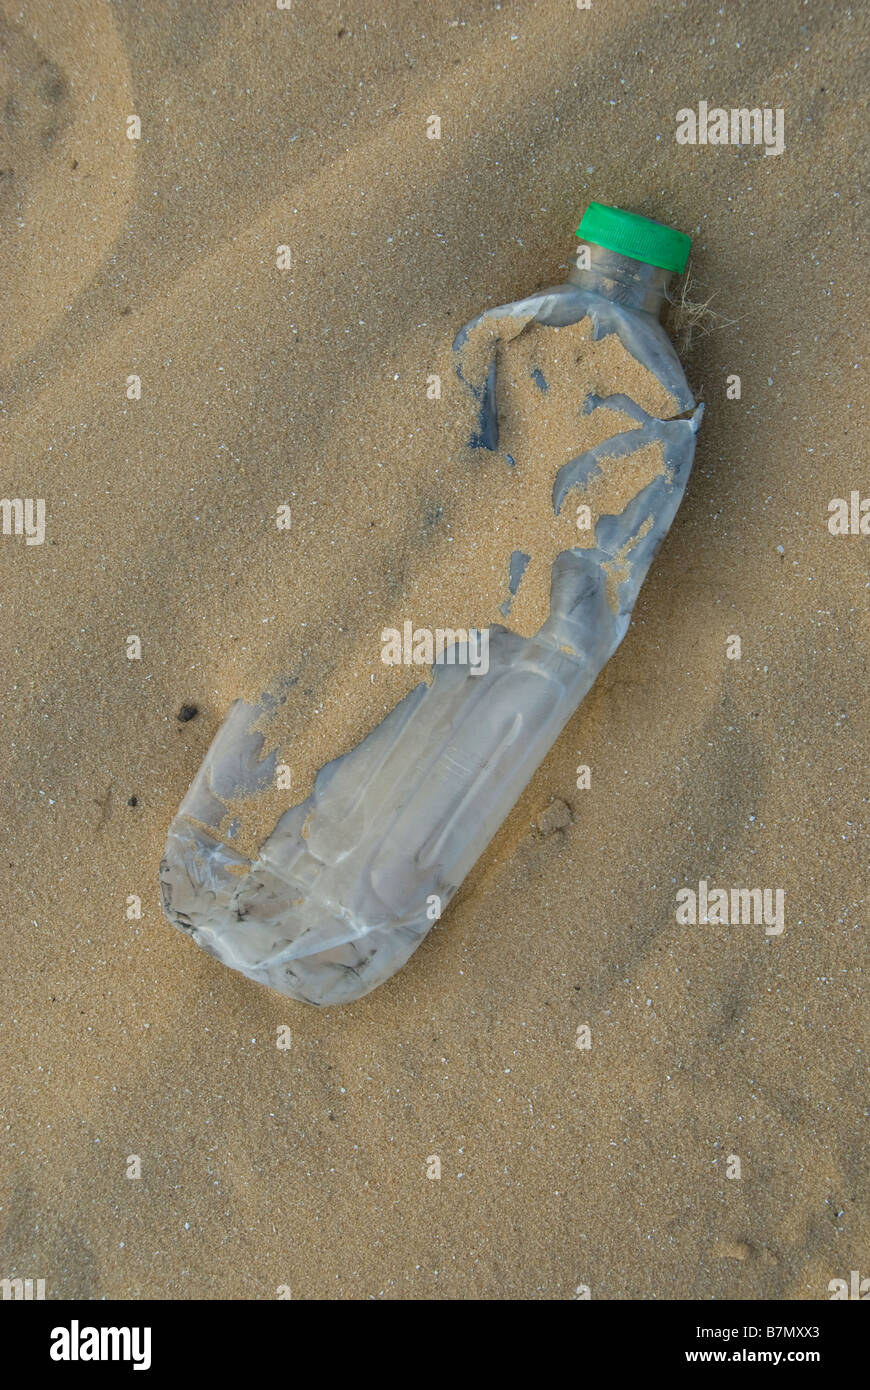 An empty smashed plastic water bottle in a sandy beach Stock Photo